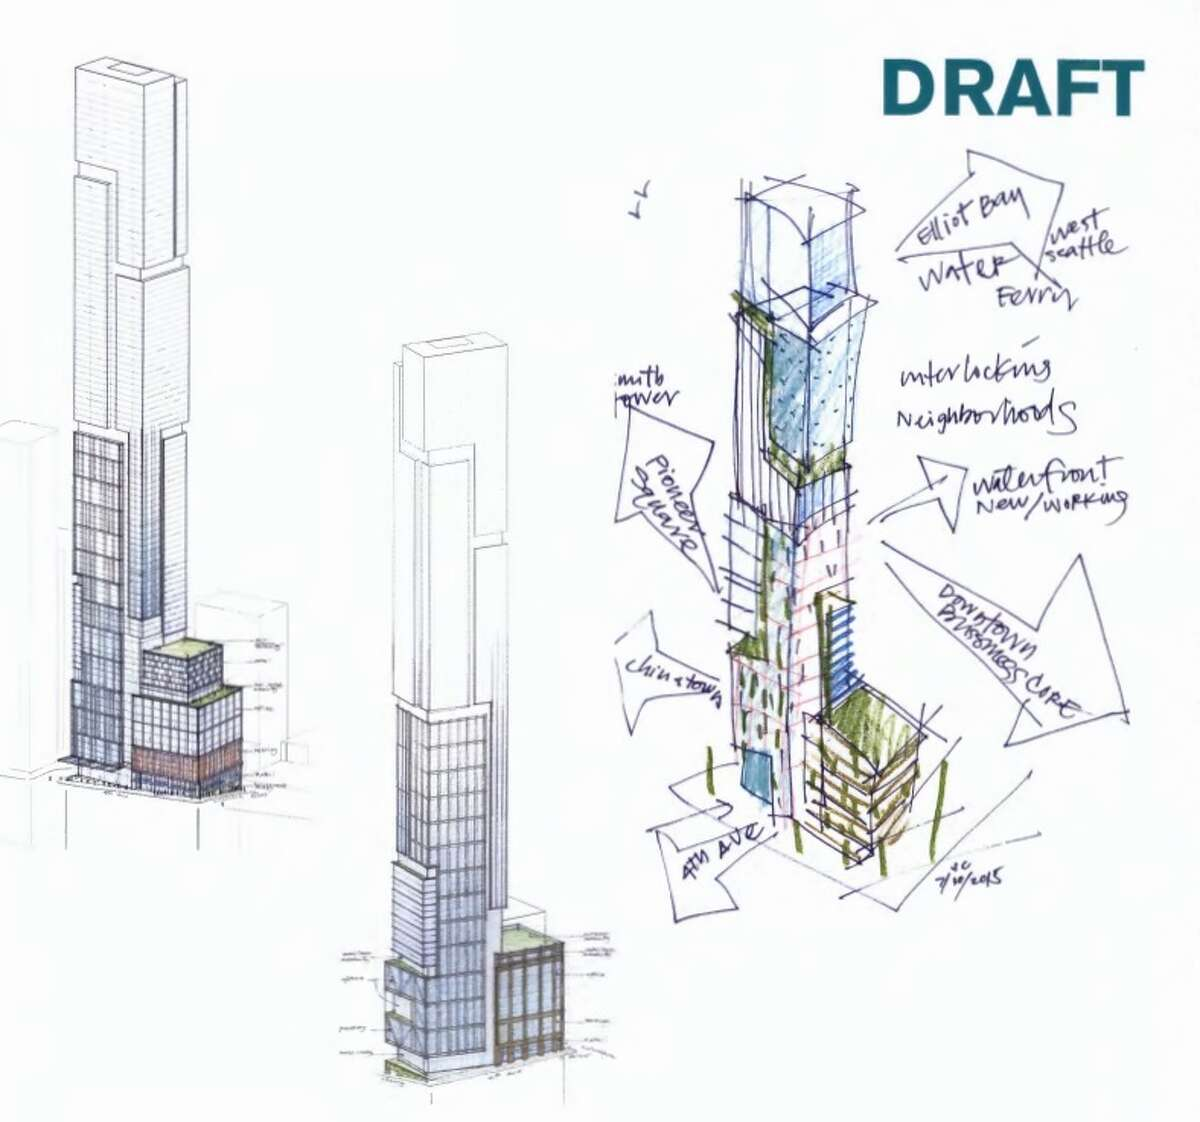 This rendering shows what appears to be a hand-drawn concept of the building alongside some more refined ideas.